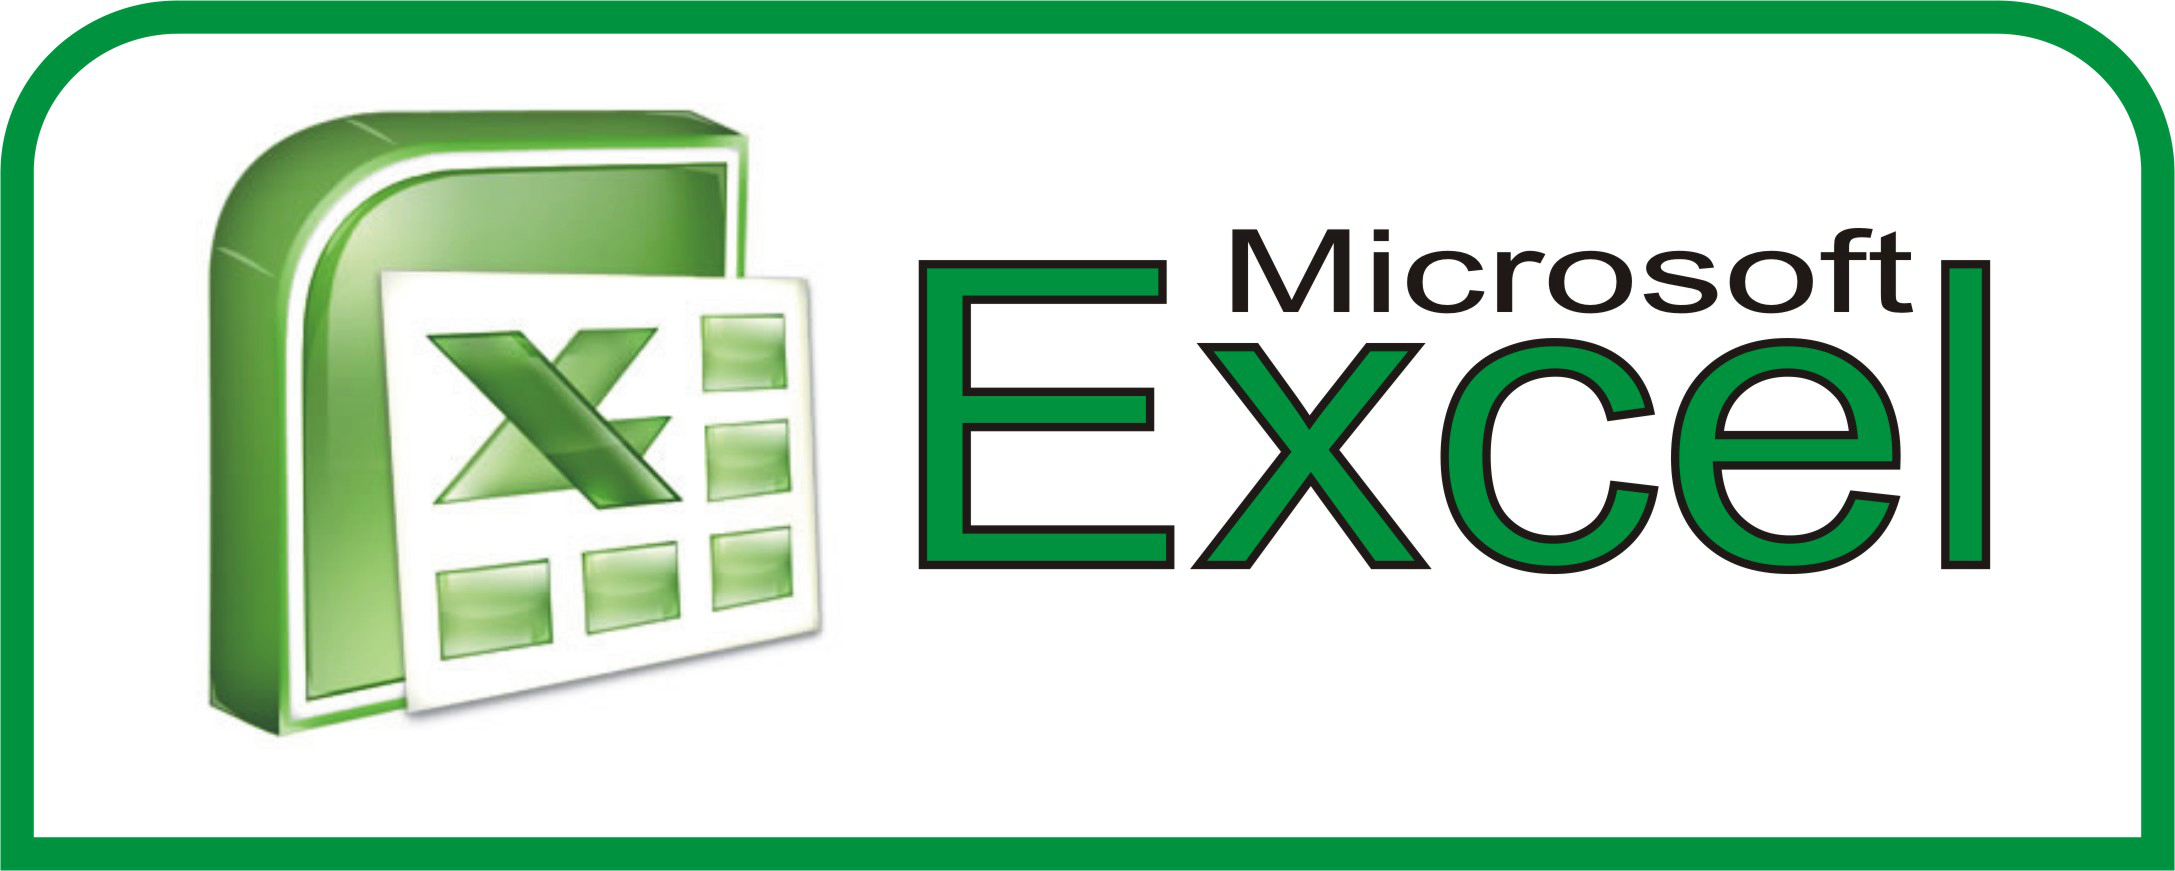 Ediblewildsus  Winsome  Excel Shortcuts You Probably Didnt Know About  Techdissected With Great Monthly Payment Formula Excel Besides Shortcut Key To Merge Cells In Excel  Furthermore Vba Excel Beginners With Nice Excel For Dummies  Also String Replace In Excel In Addition Modul Excel  And Xml To Excel Java As Well As Clean Function Excel Additionally Sorting Random Numbers In Excel From Techdissectedcom With Ediblewildsus  Great  Excel Shortcuts You Probably Didnt Know About  Techdissected With Nice Monthly Payment Formula Excel Besides Shortcut Key To Merge Cells In Excel  Furthermore Vba Excel Beginners And Winsome Excel For Dummies  Also String Replace In Excel In Addition Modul Excel  From Techdissectedcom